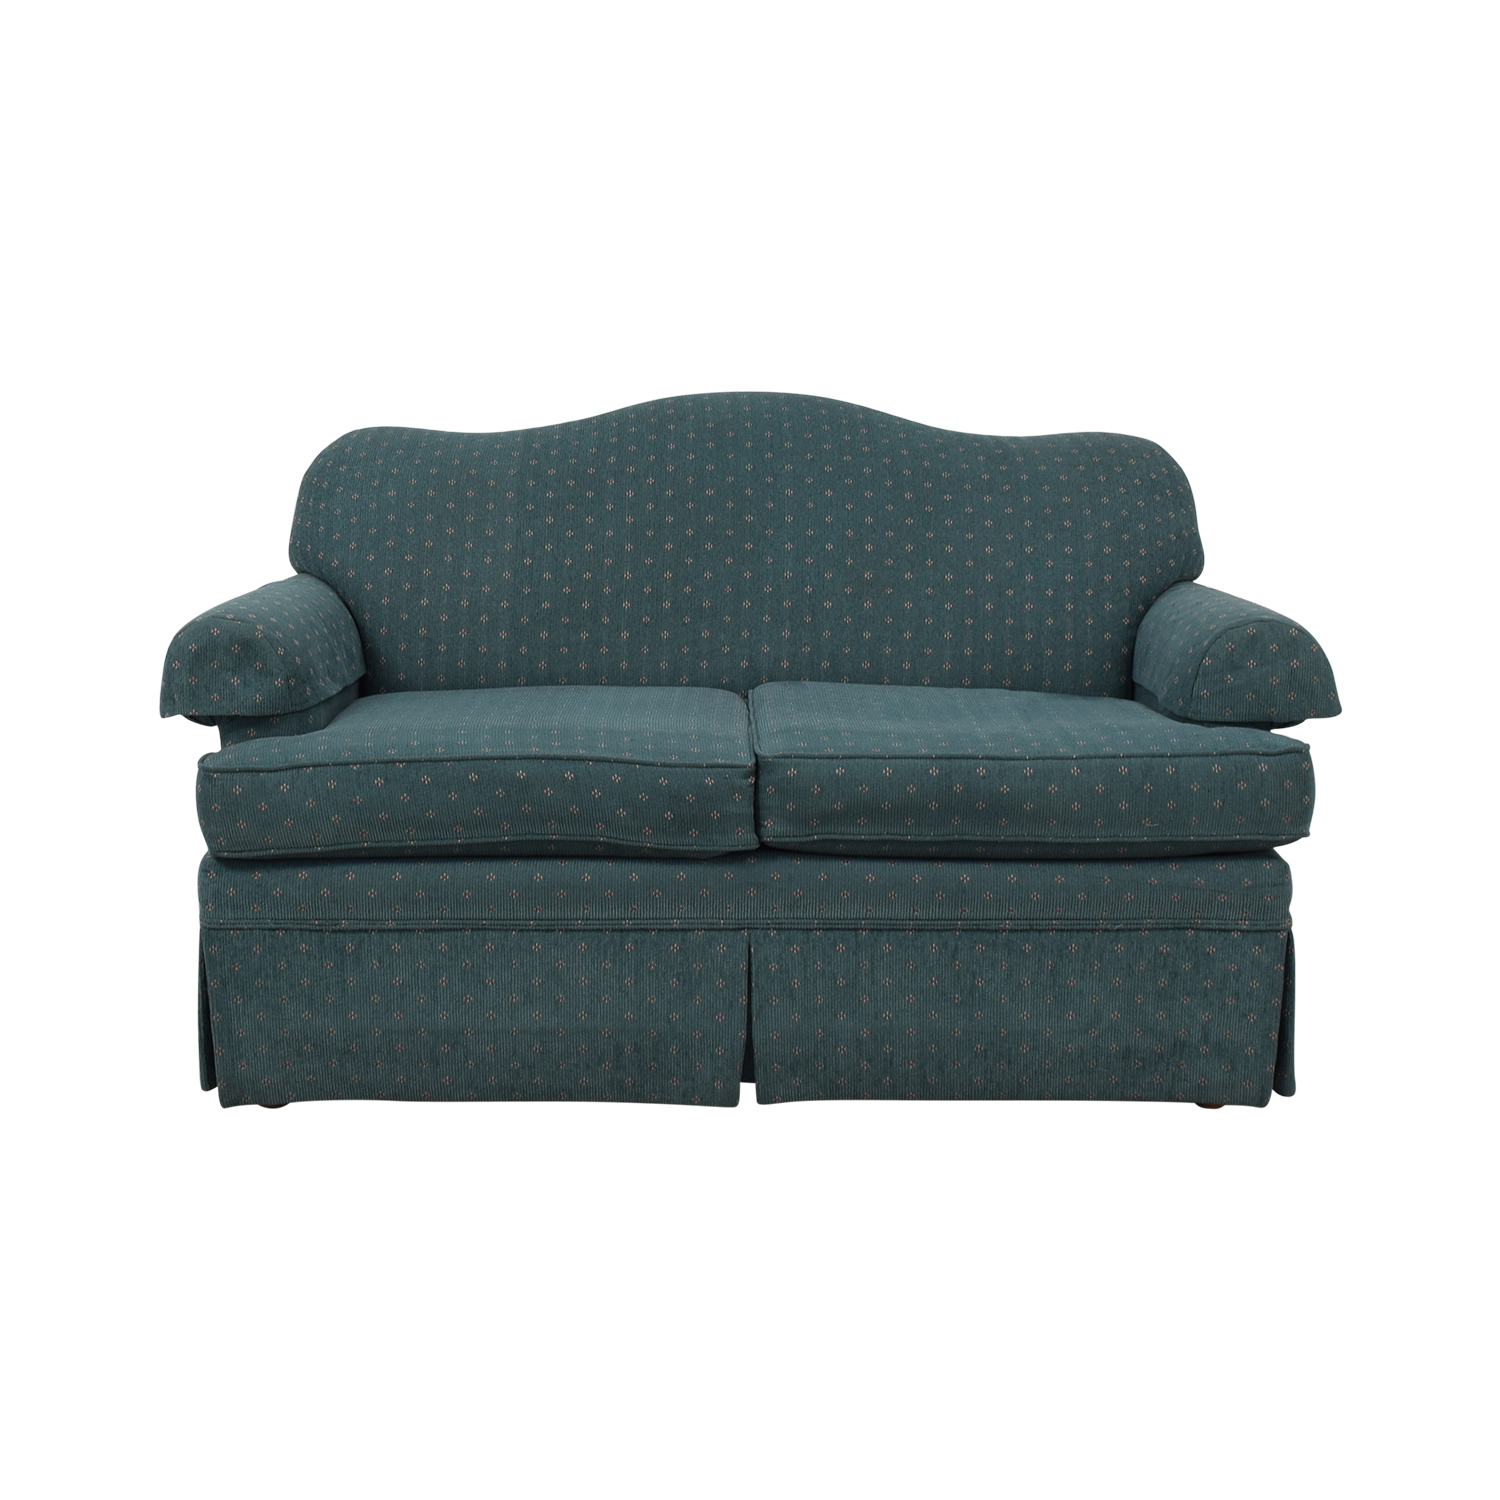 La-Z-Boy La-Z-Boy Patterned Loveseat pa